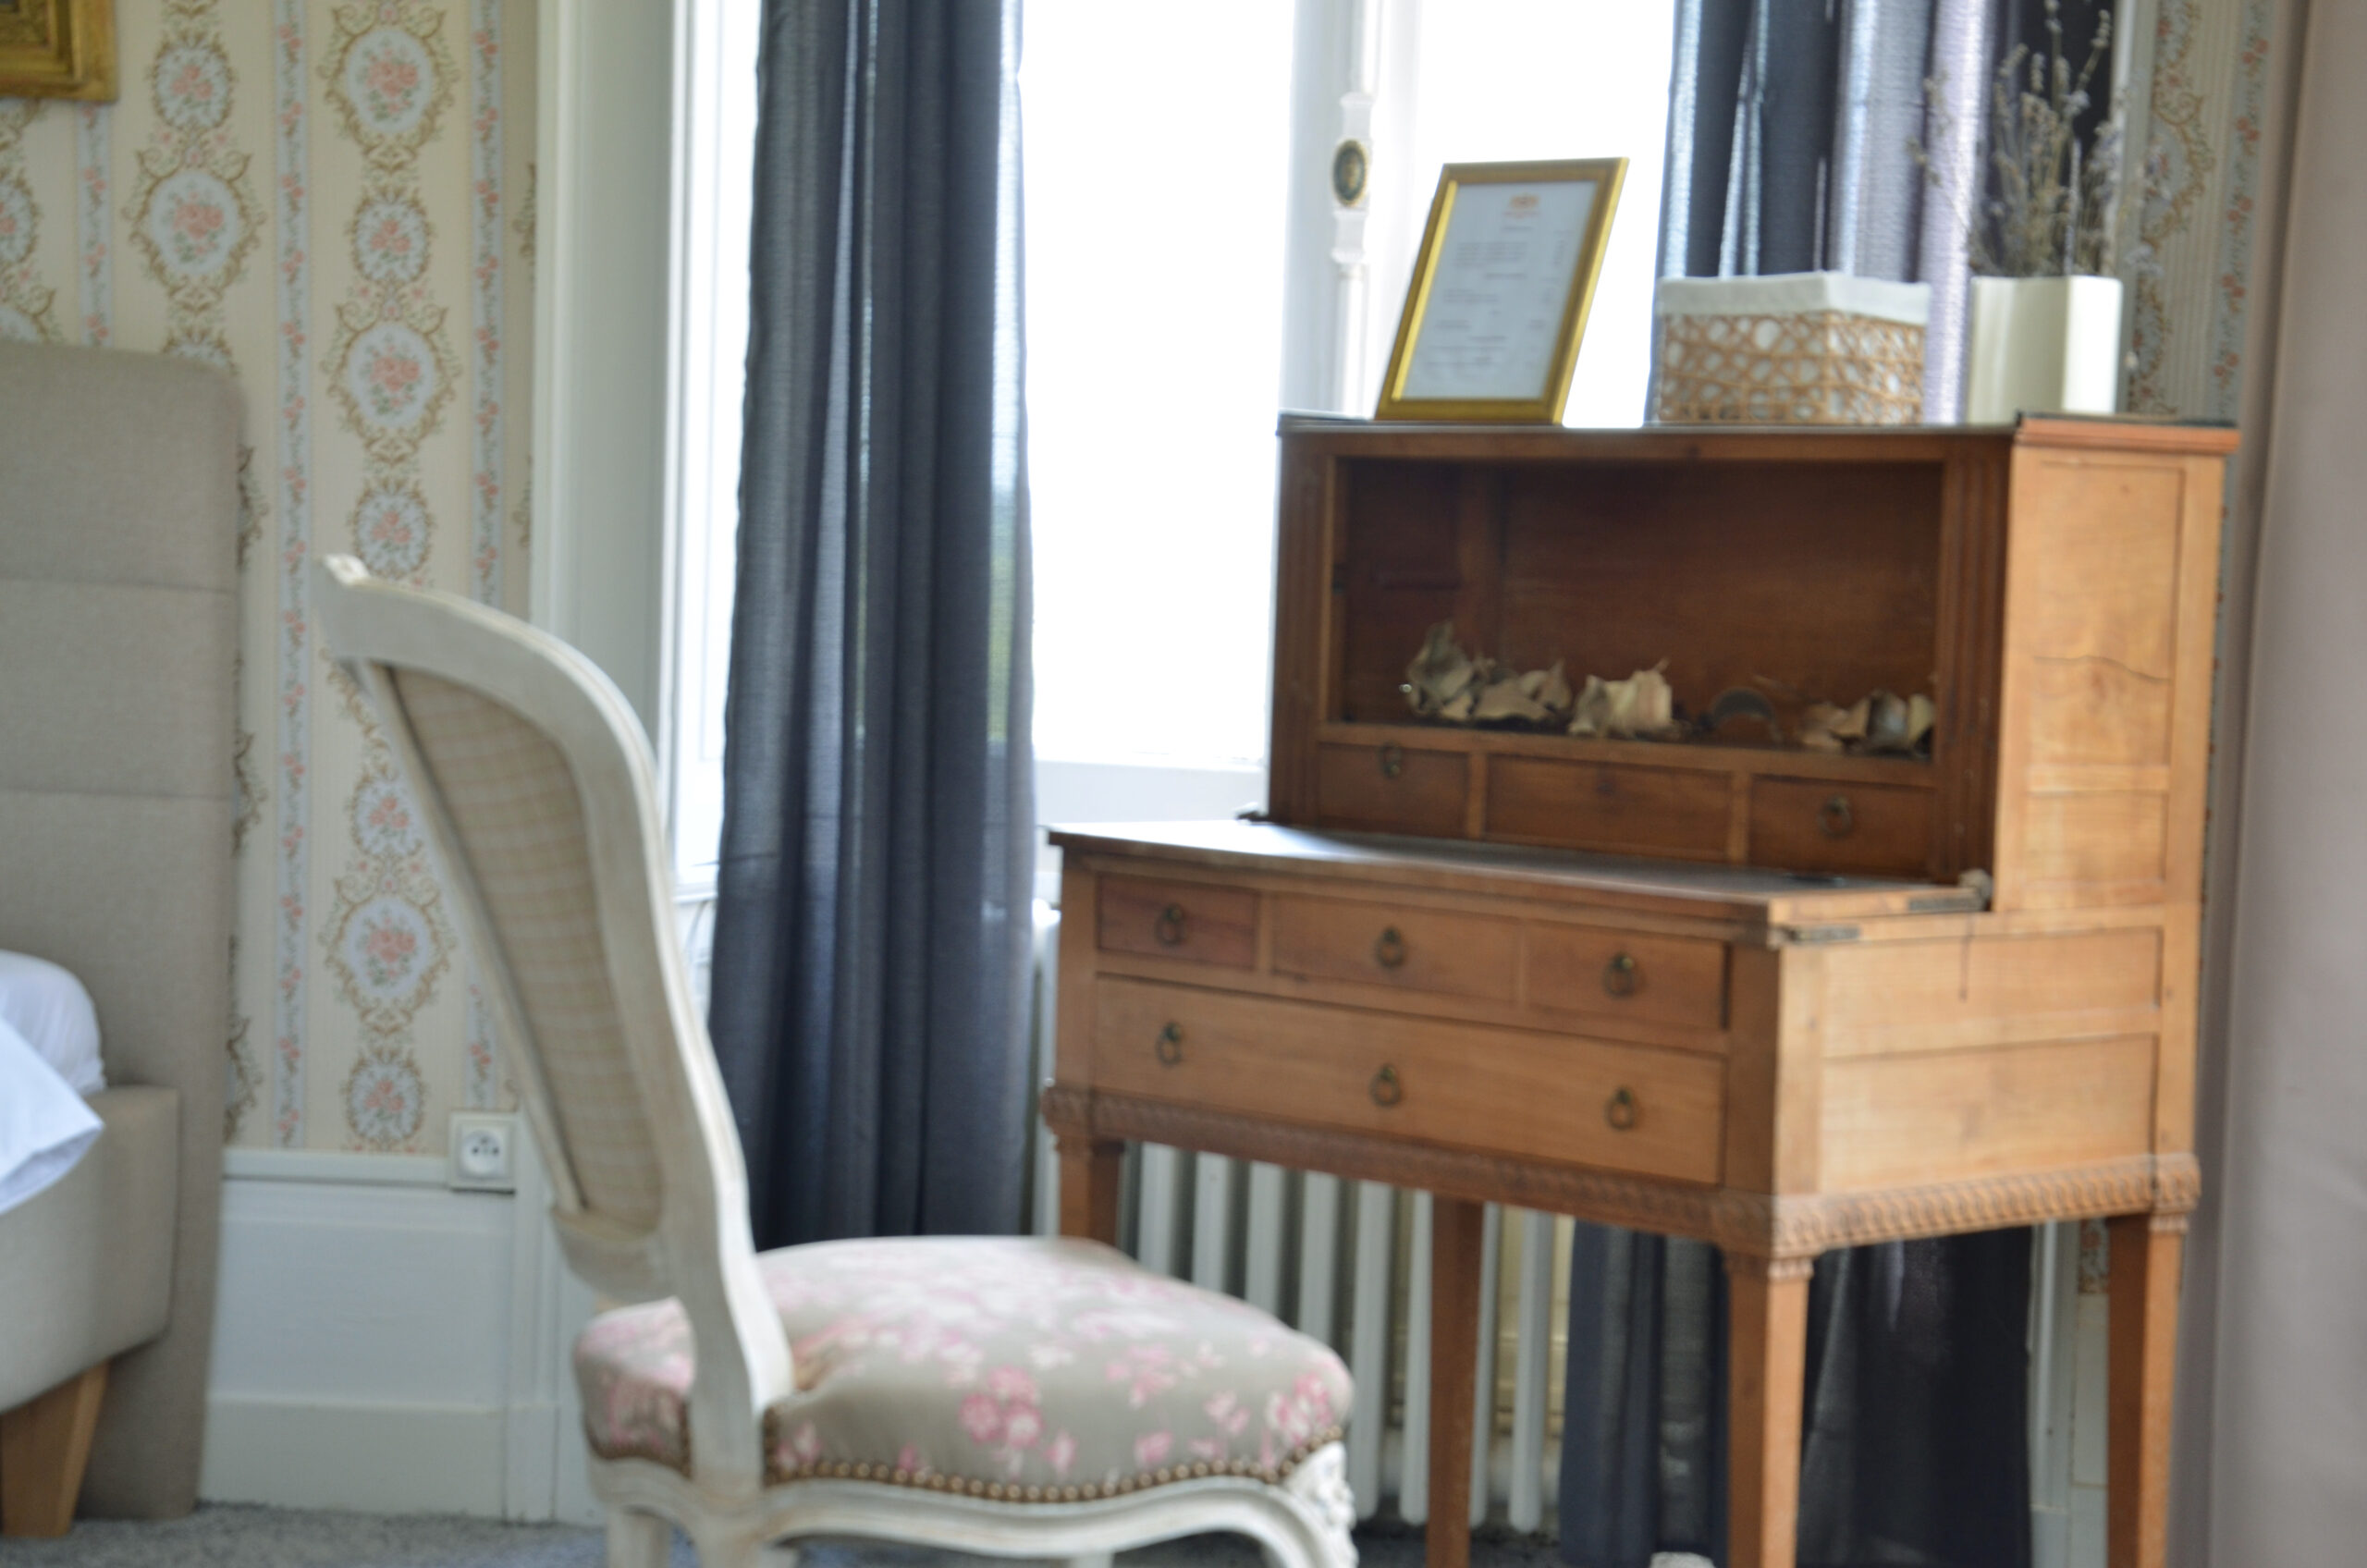 chateau_coliving_castle_coworking_rooms_normandy_france_gateaway_03